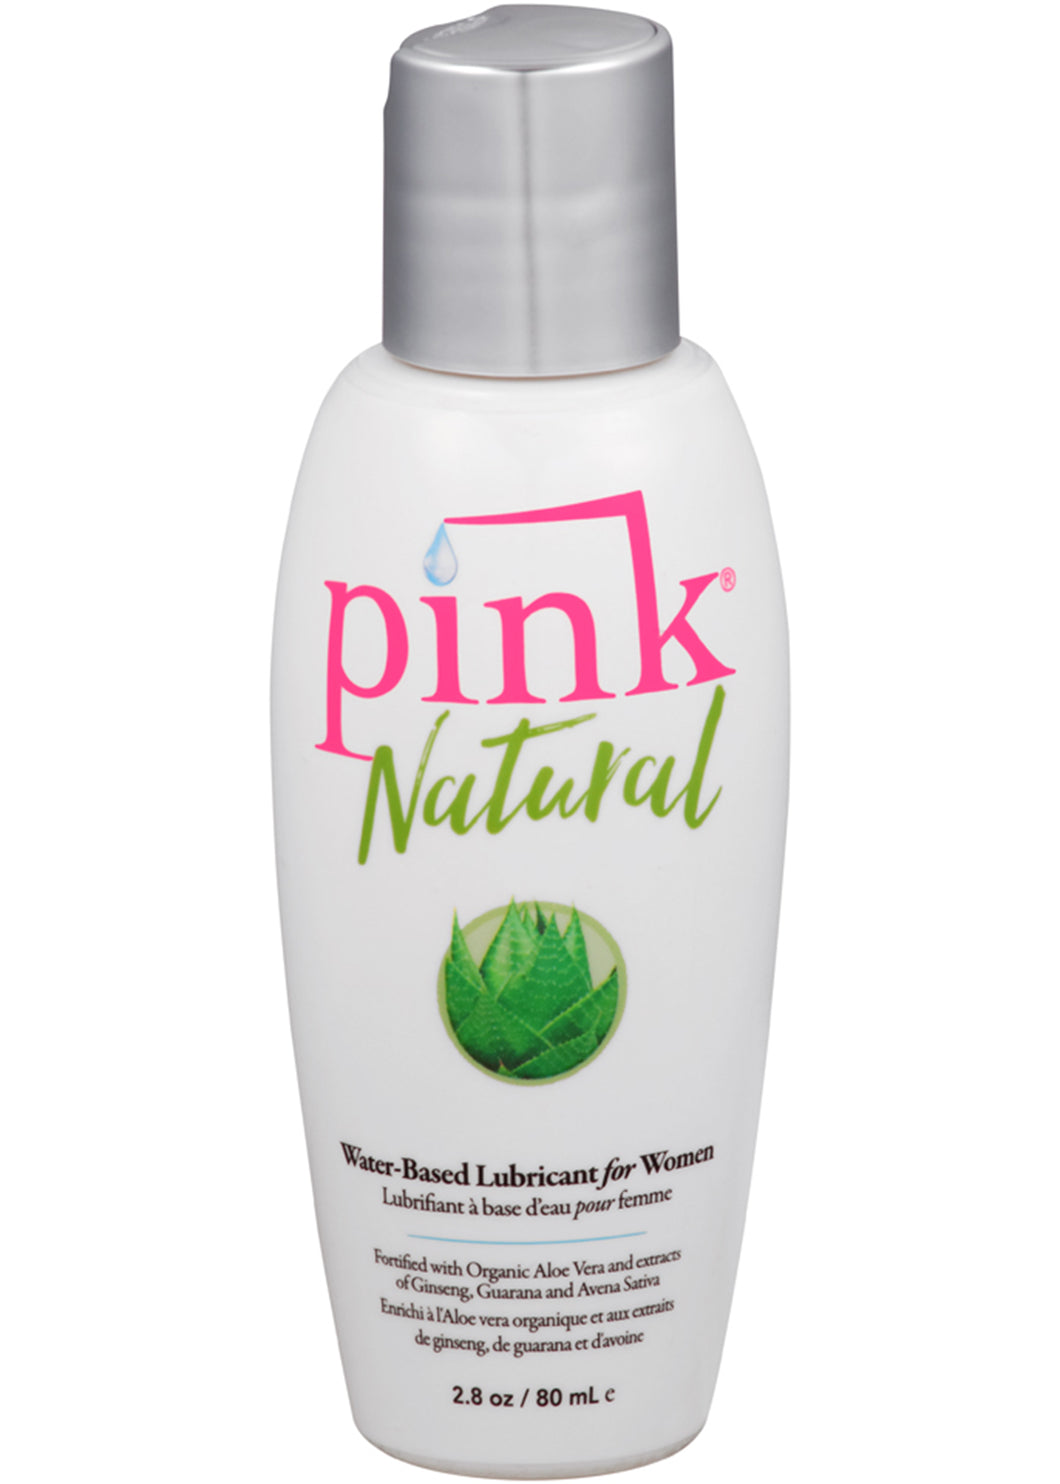 Pink Natural - 2.8 Oz. / 80 ml - My sheree and More